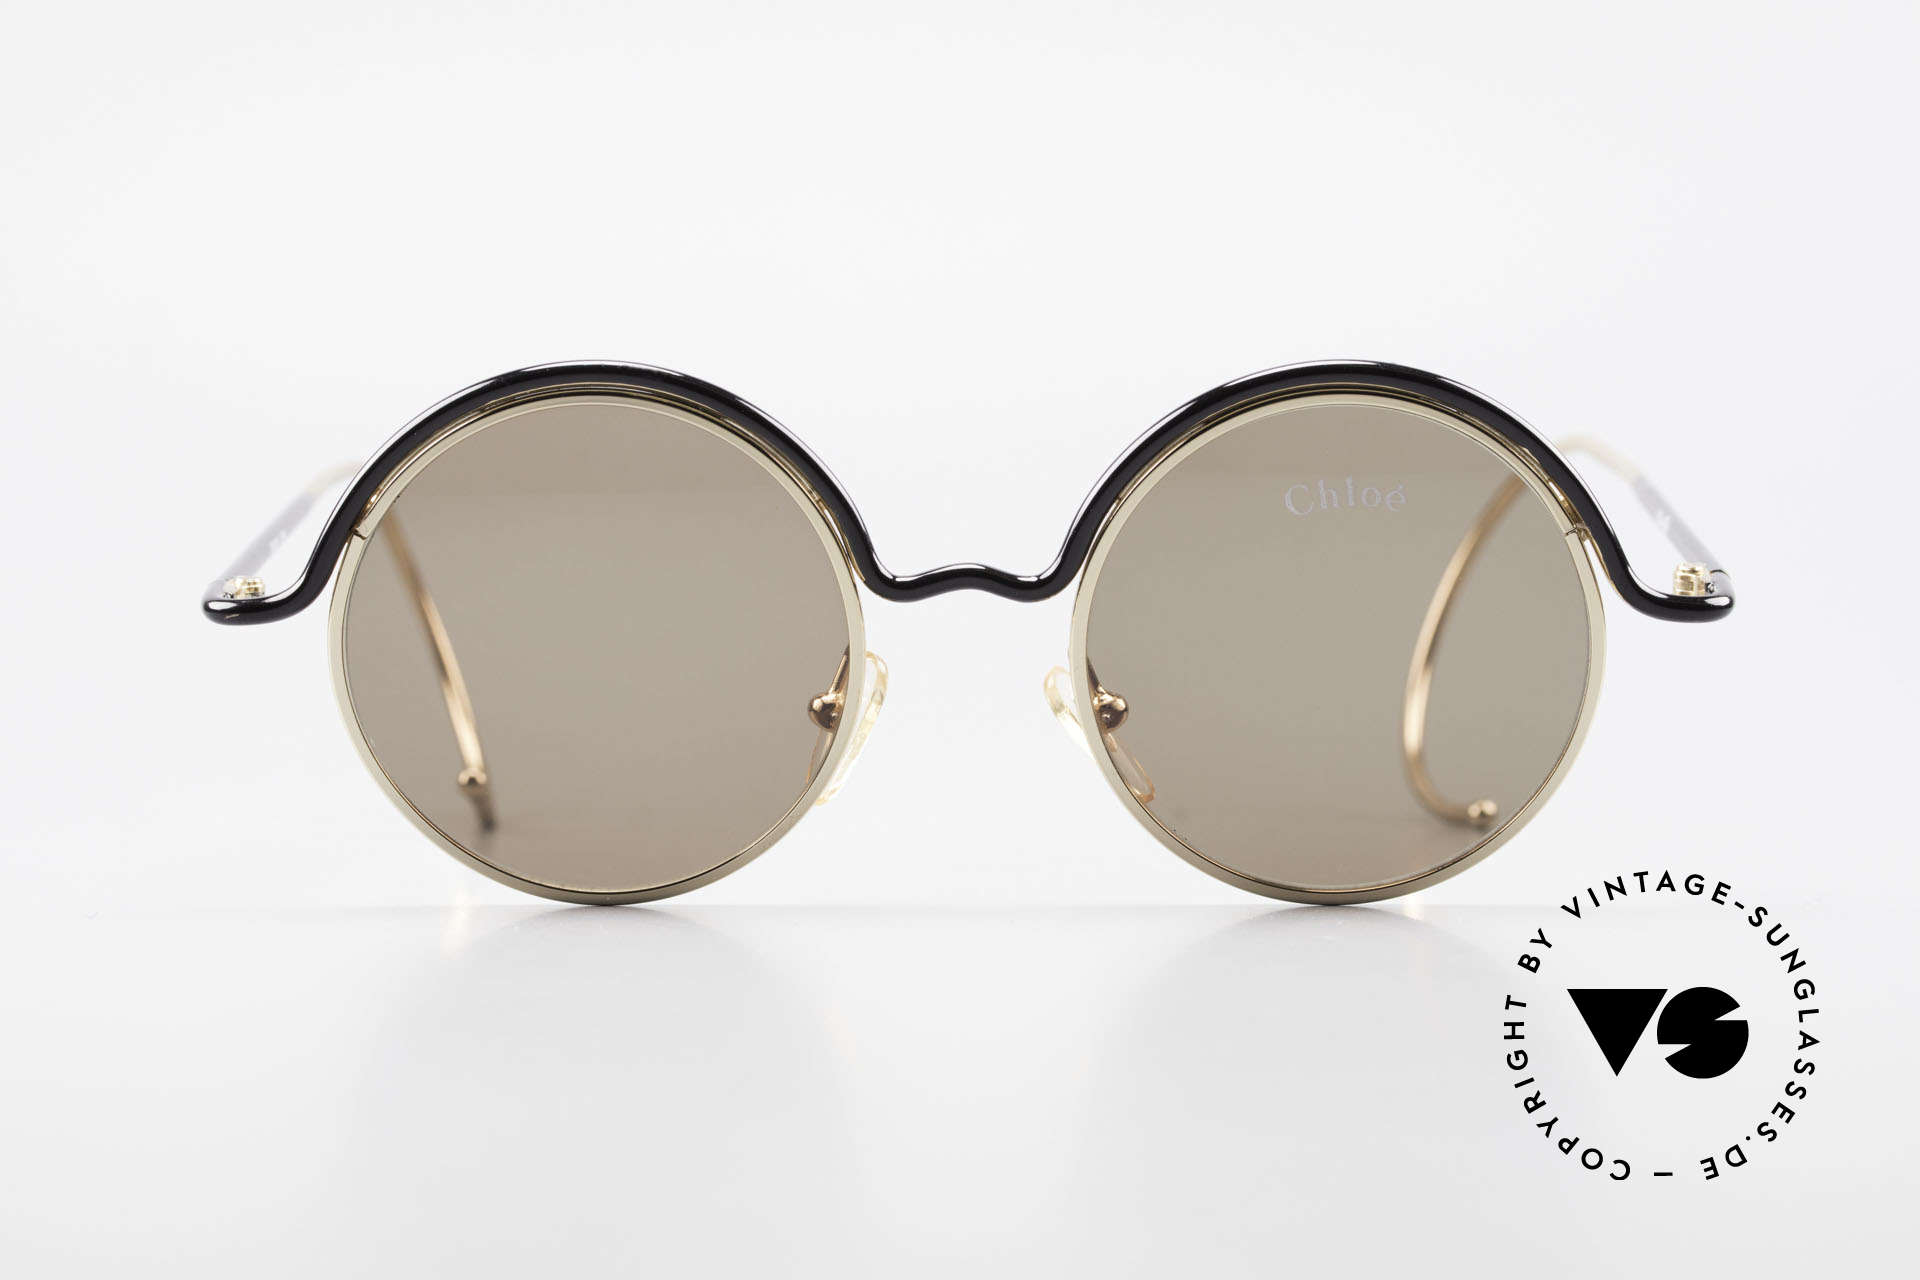 Chloe Show 1 Round Ladies Sunglasses 90's, timeless shades with flexible sports temples, Made for Women